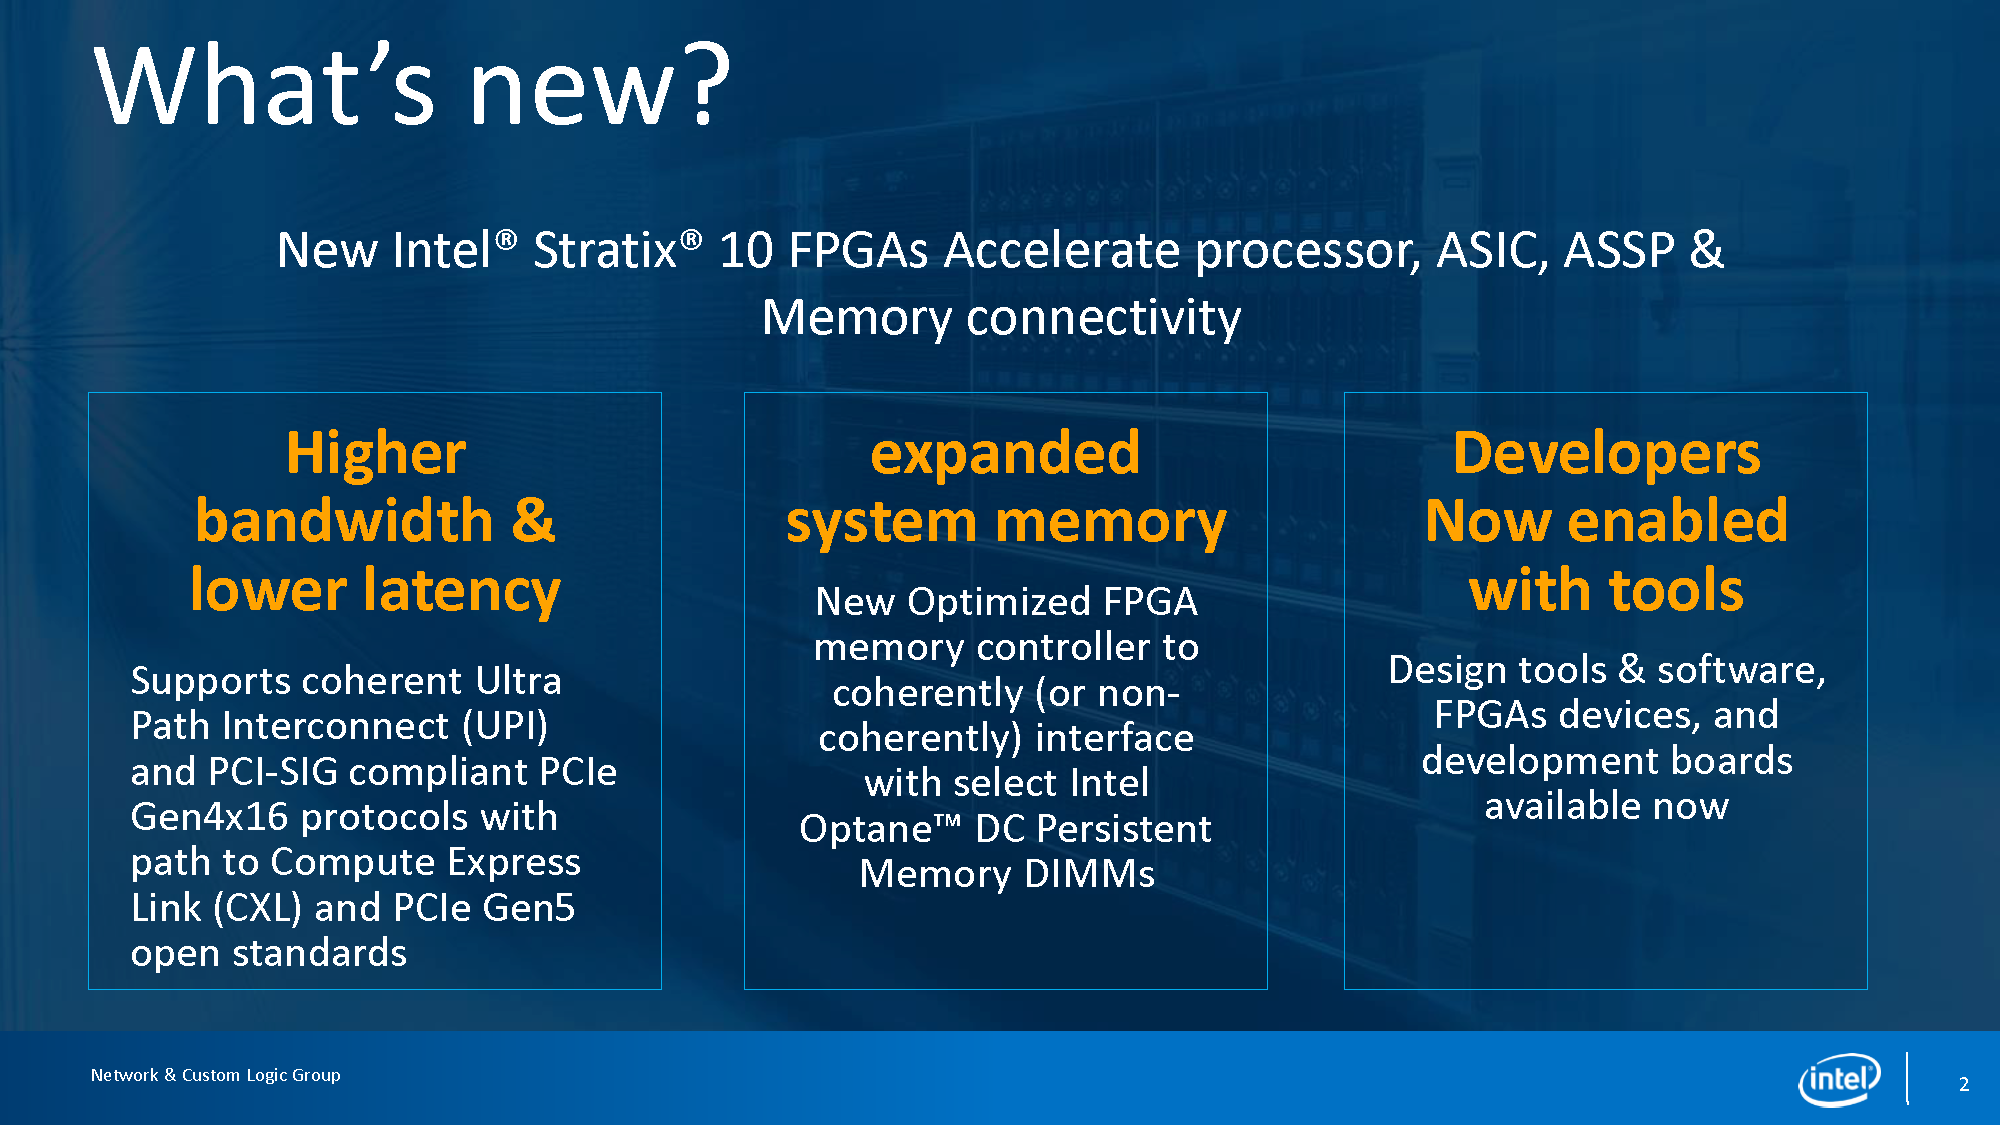 Intel Stratix 10 UPI And PCIe Gen4 News Summary